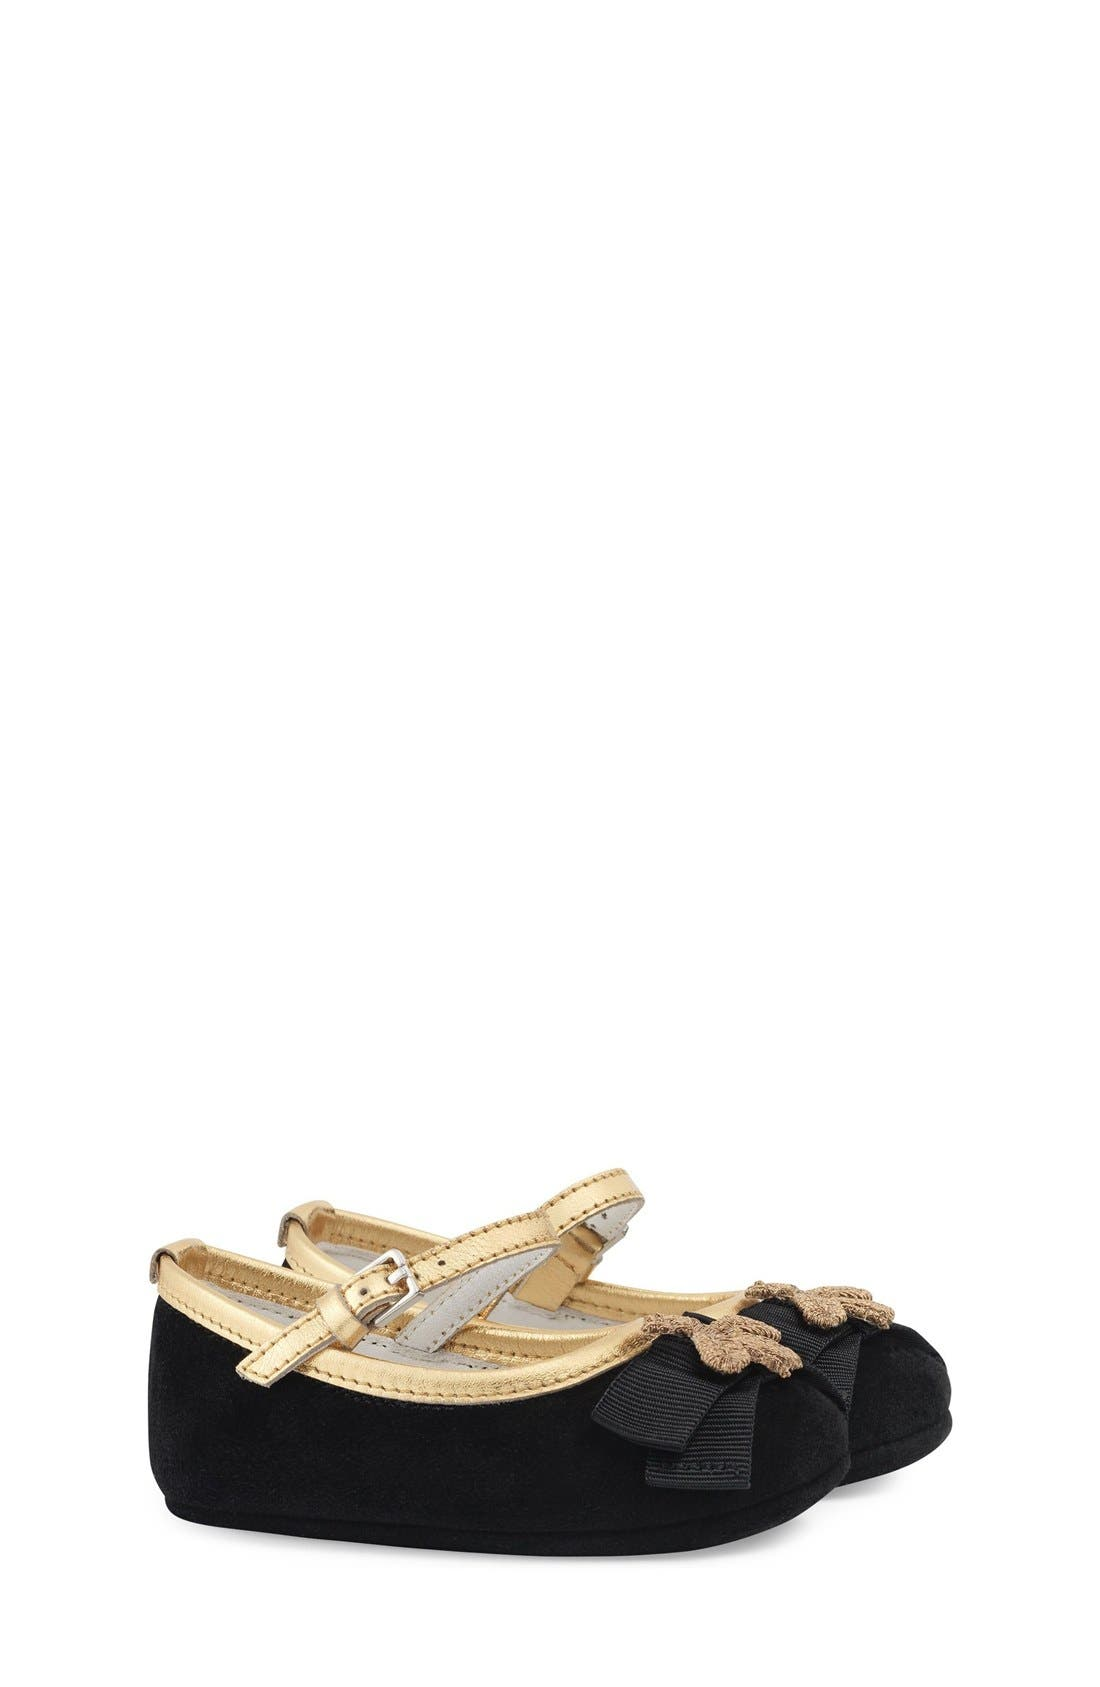 Moody Mary Jane,                         Main,                         color, Black/ Gold